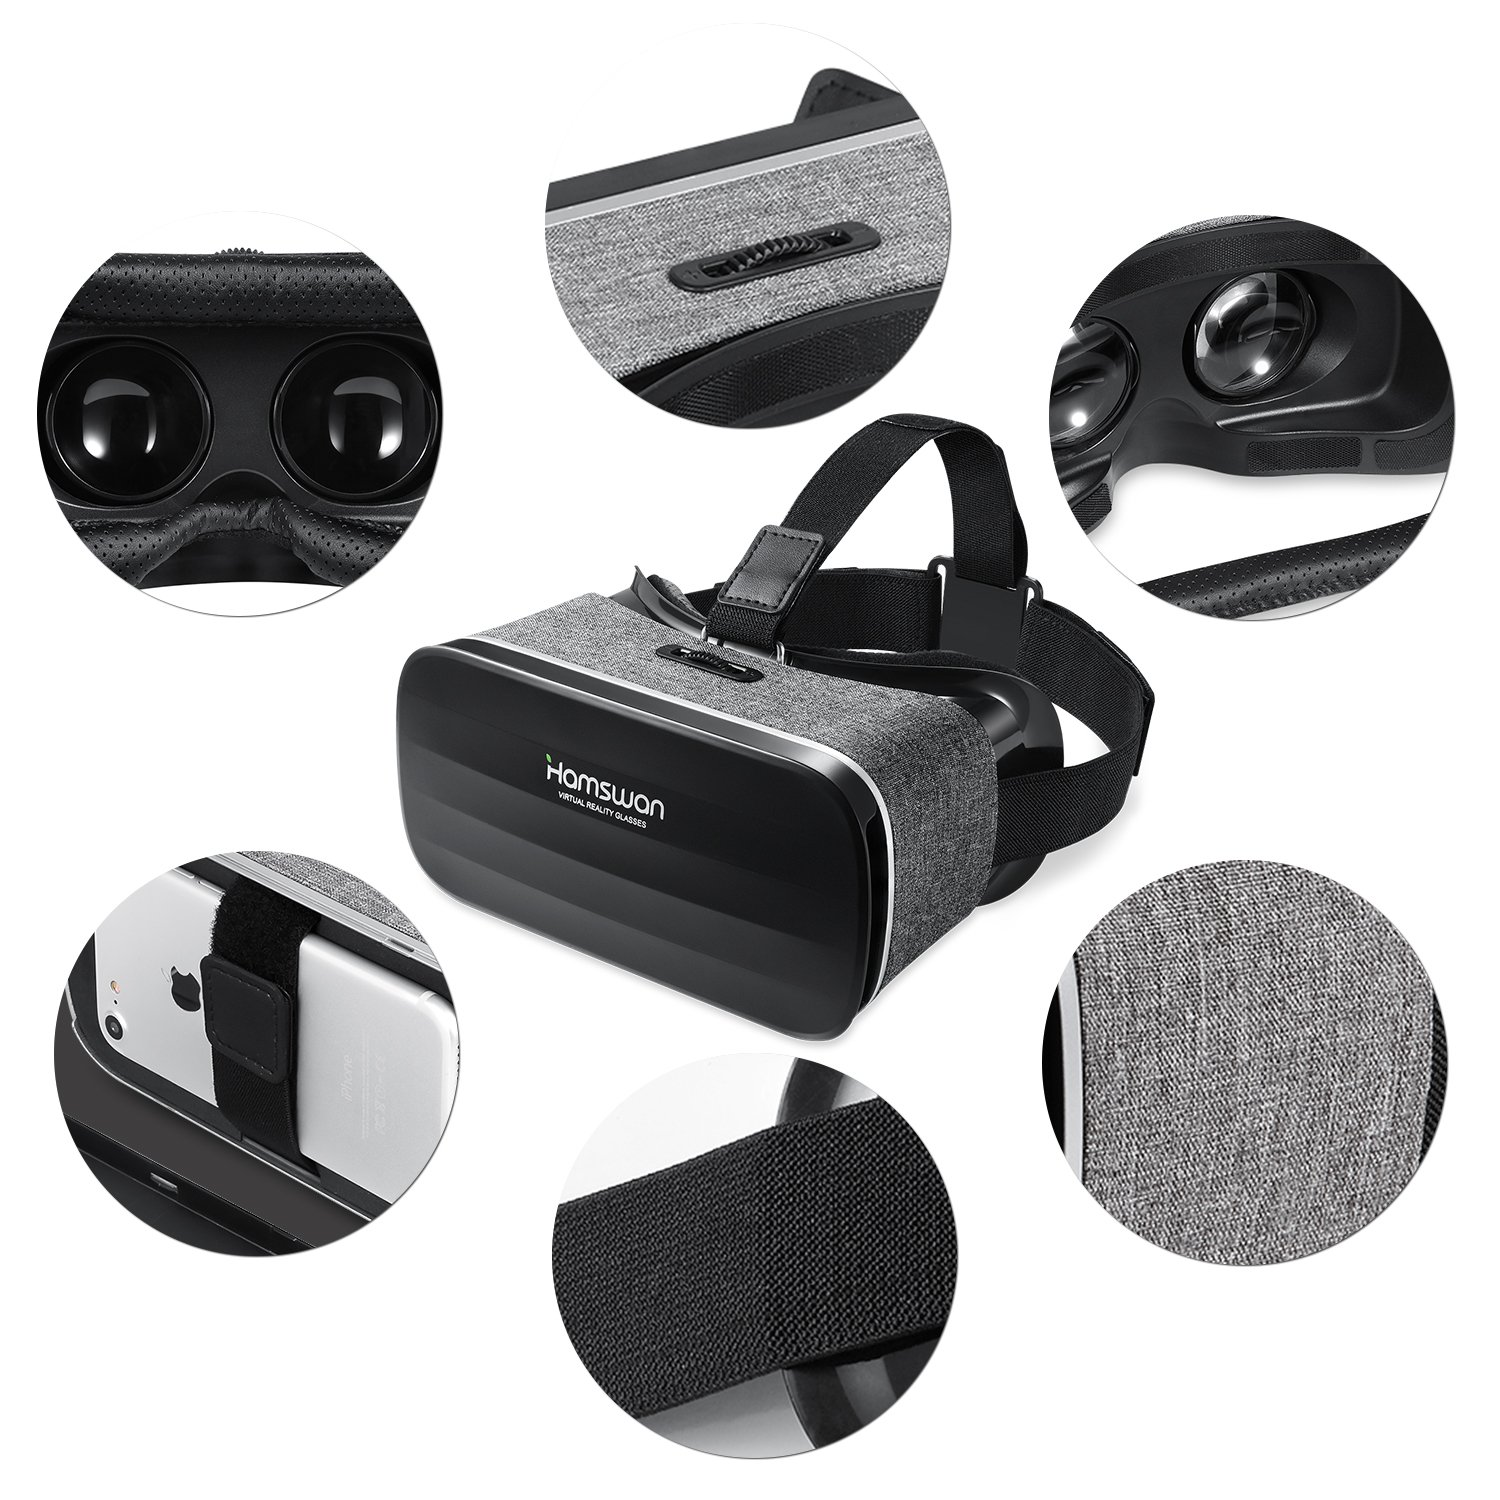 3D Virtual Reality Headset, HAMSWAN VR Goggles VR Glasses VR Headset for TV, Movies & Video Games - Light Weight VR Goggles Compatible with iOS, Android and Other Phones within 4.0-6.0 Inch by HAMSWAN (Image #3)